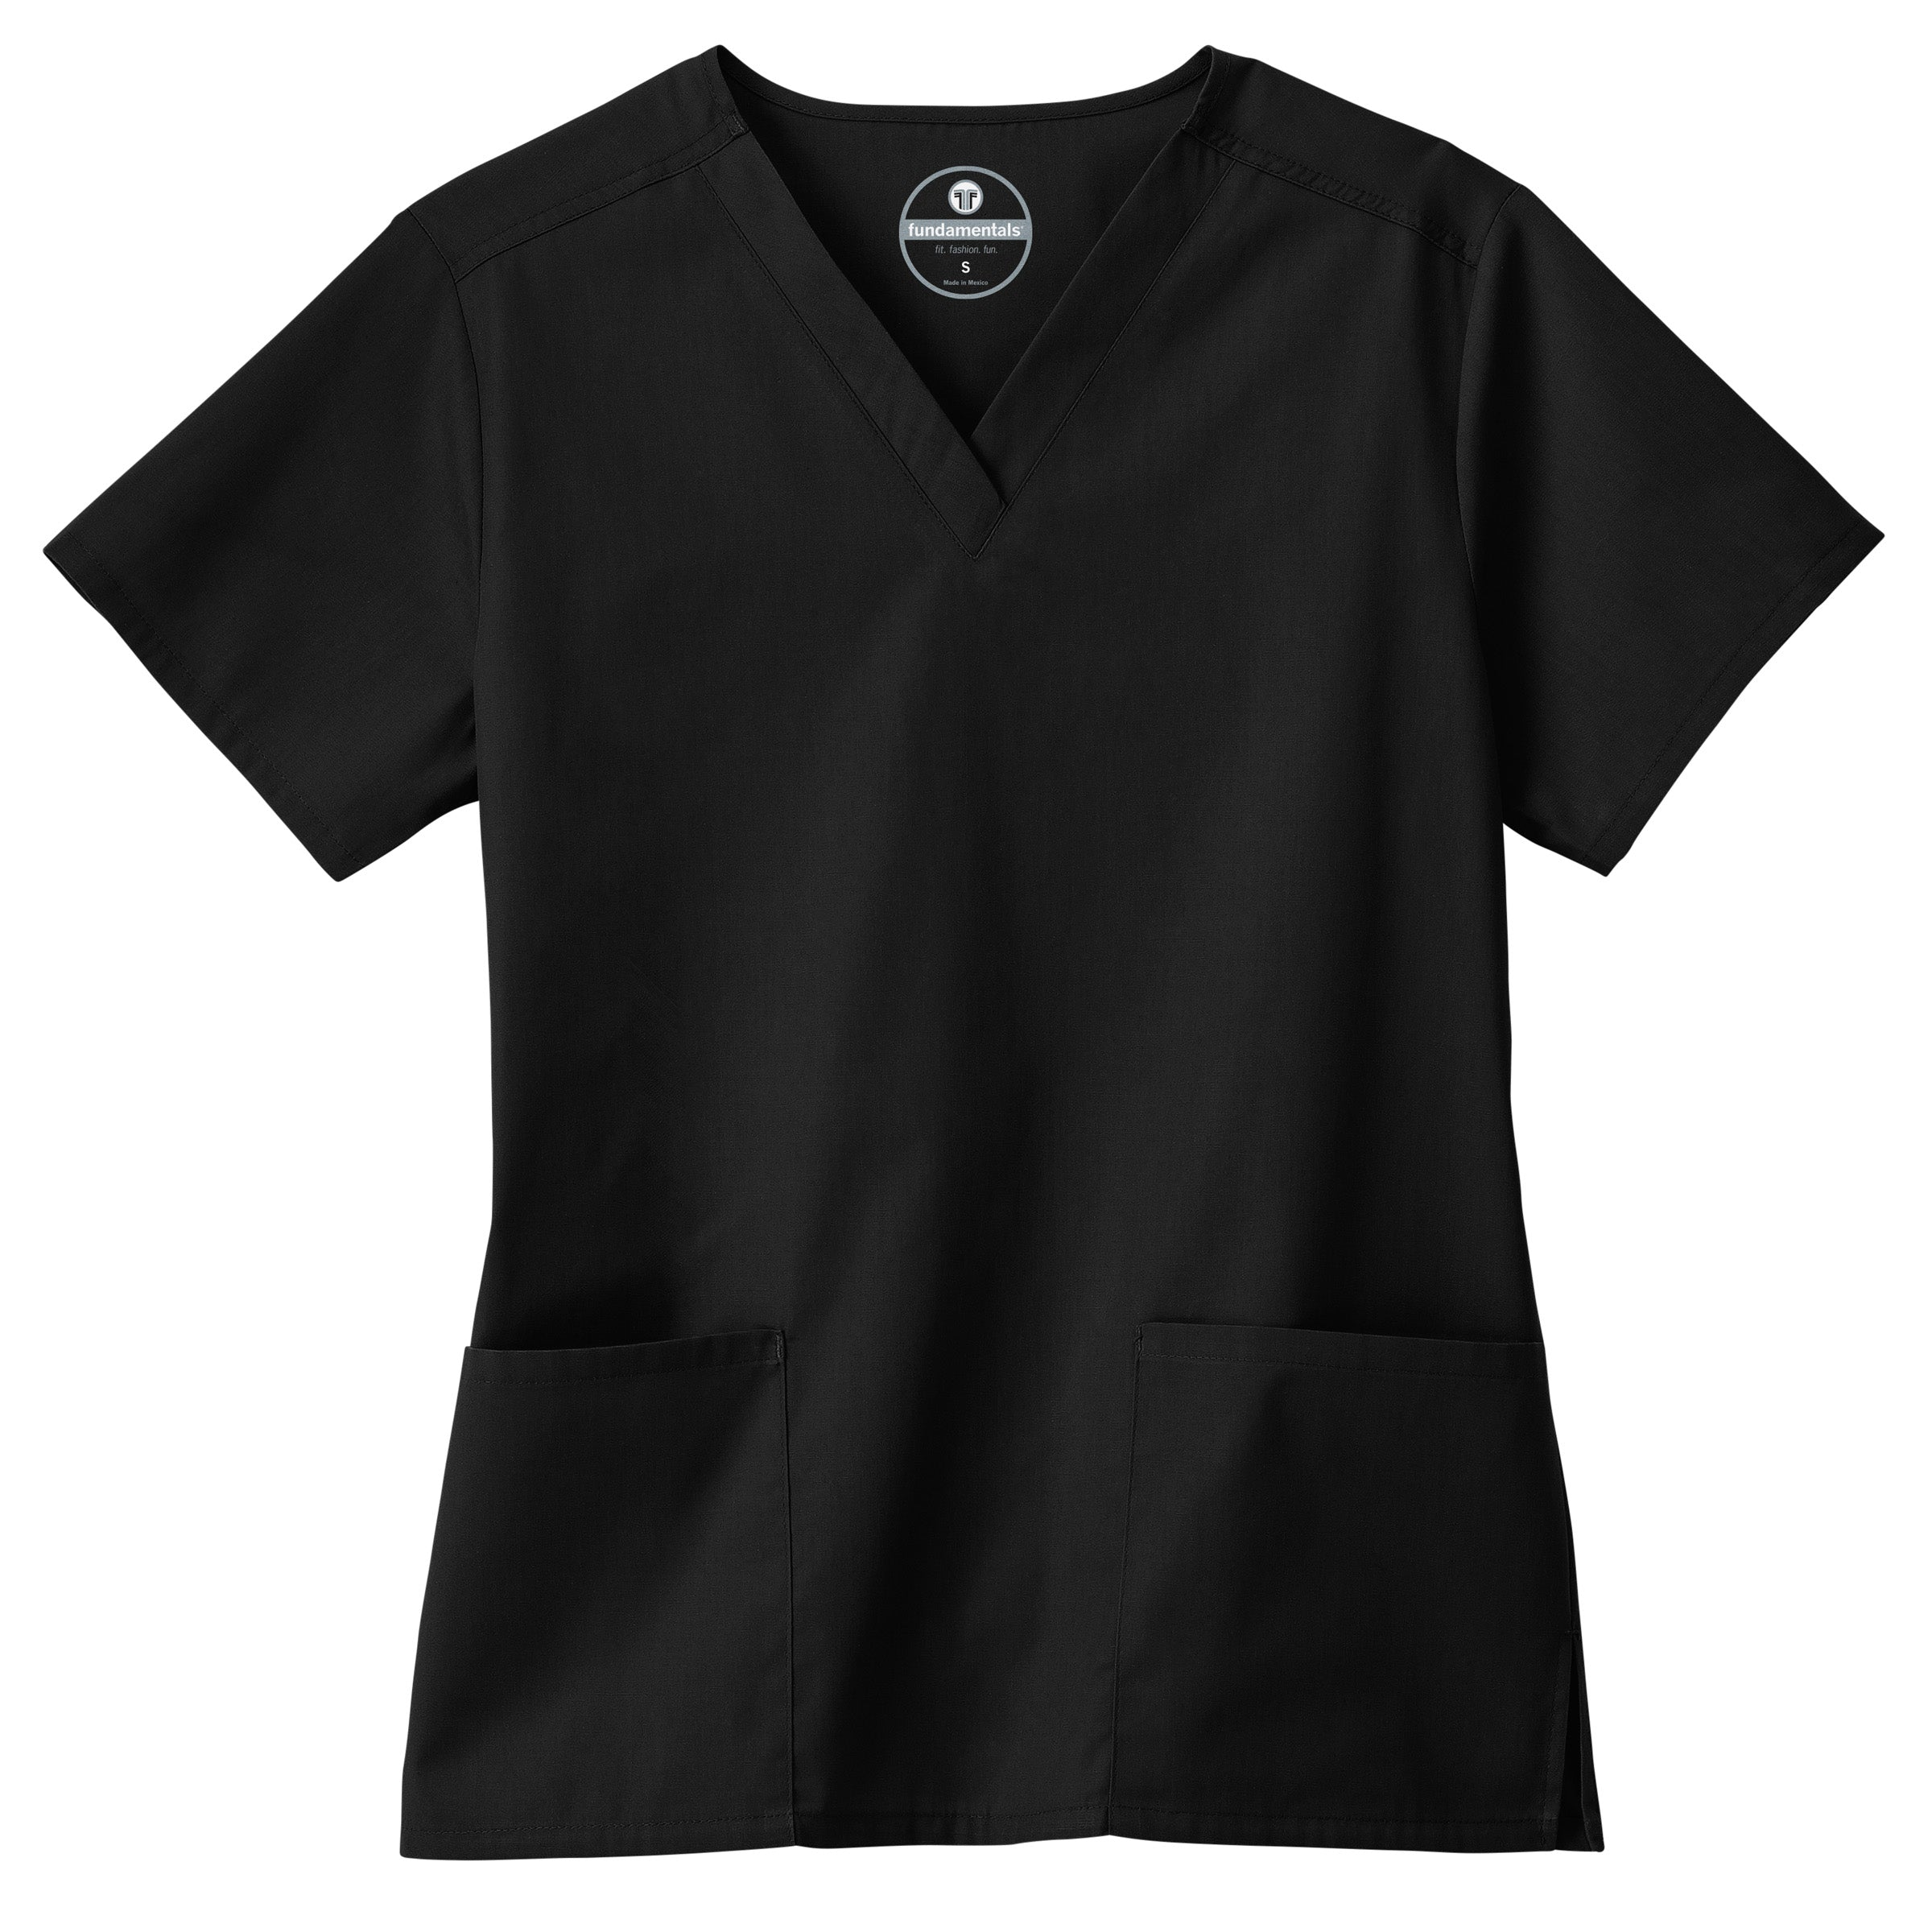 Ladies 2 Pocket V neck Top by Fundamentals w/Ochsner Health logo